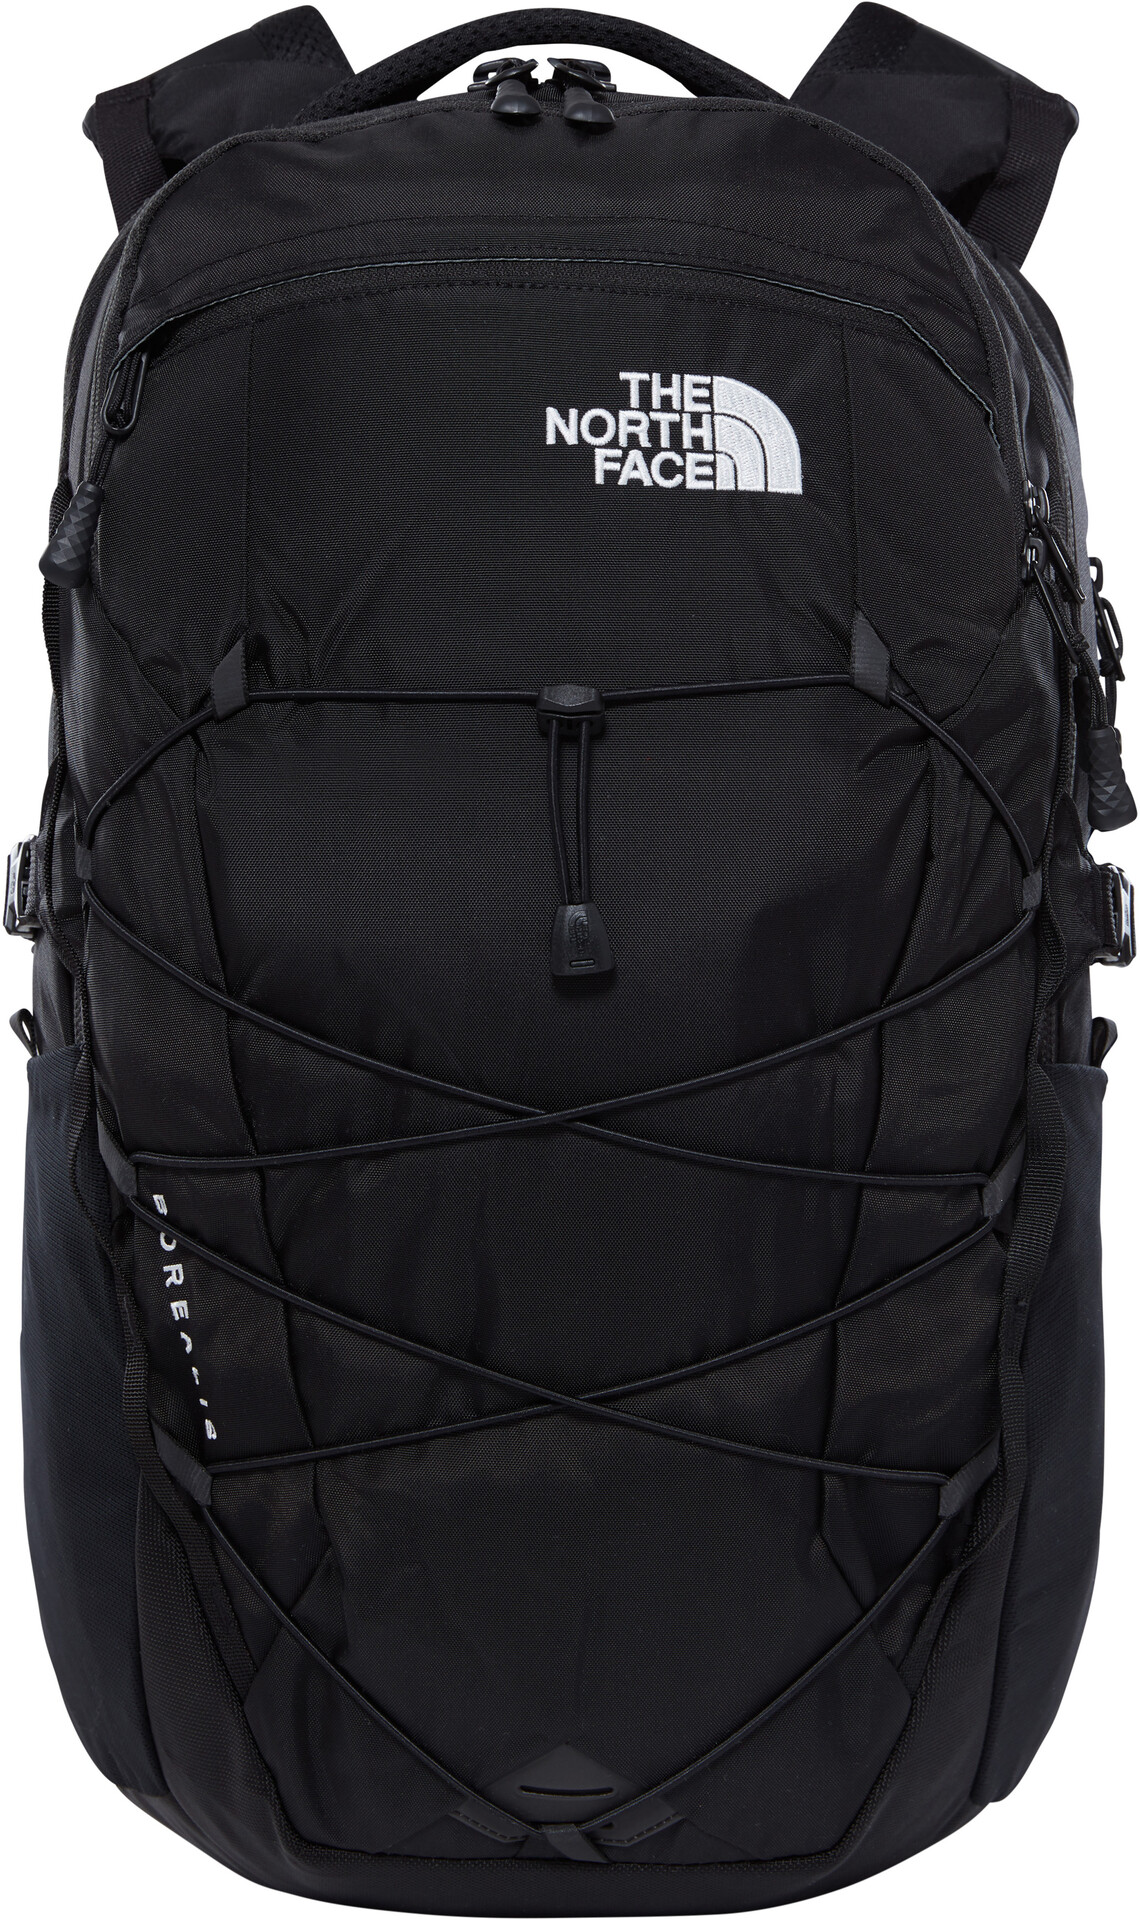 Mochila Bikester Face Negro North The Borealis es xqX5p6ntw4